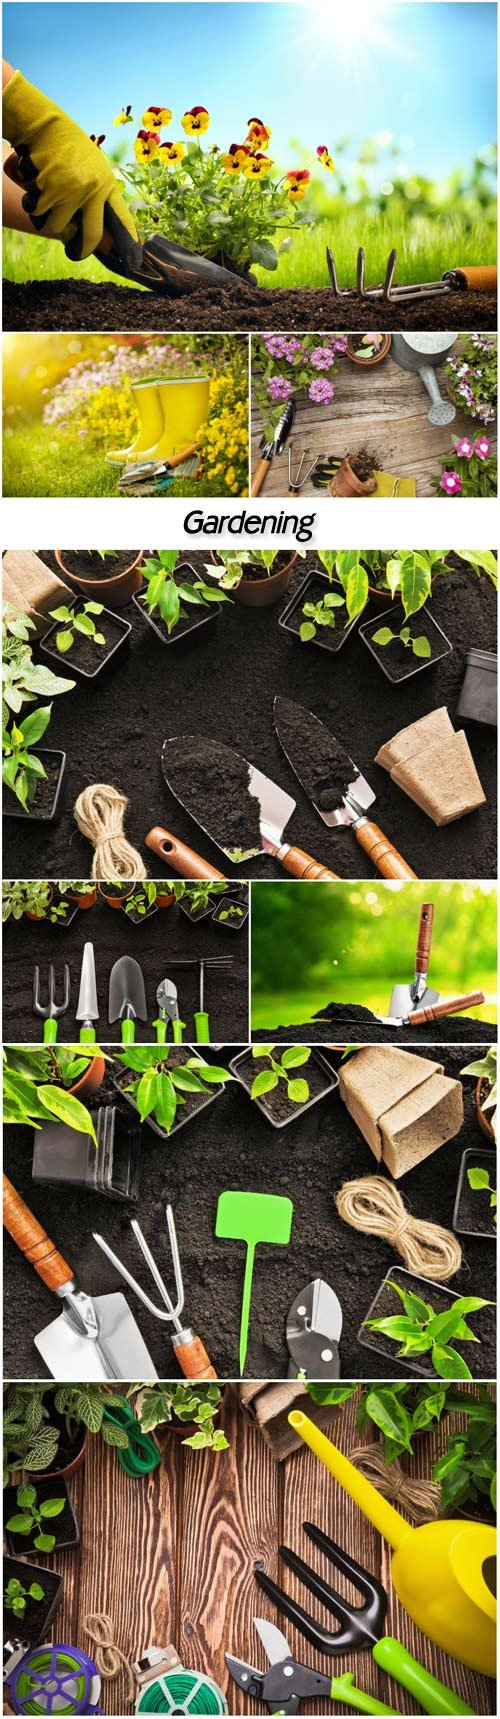 Gardening, flowers and gardening tools